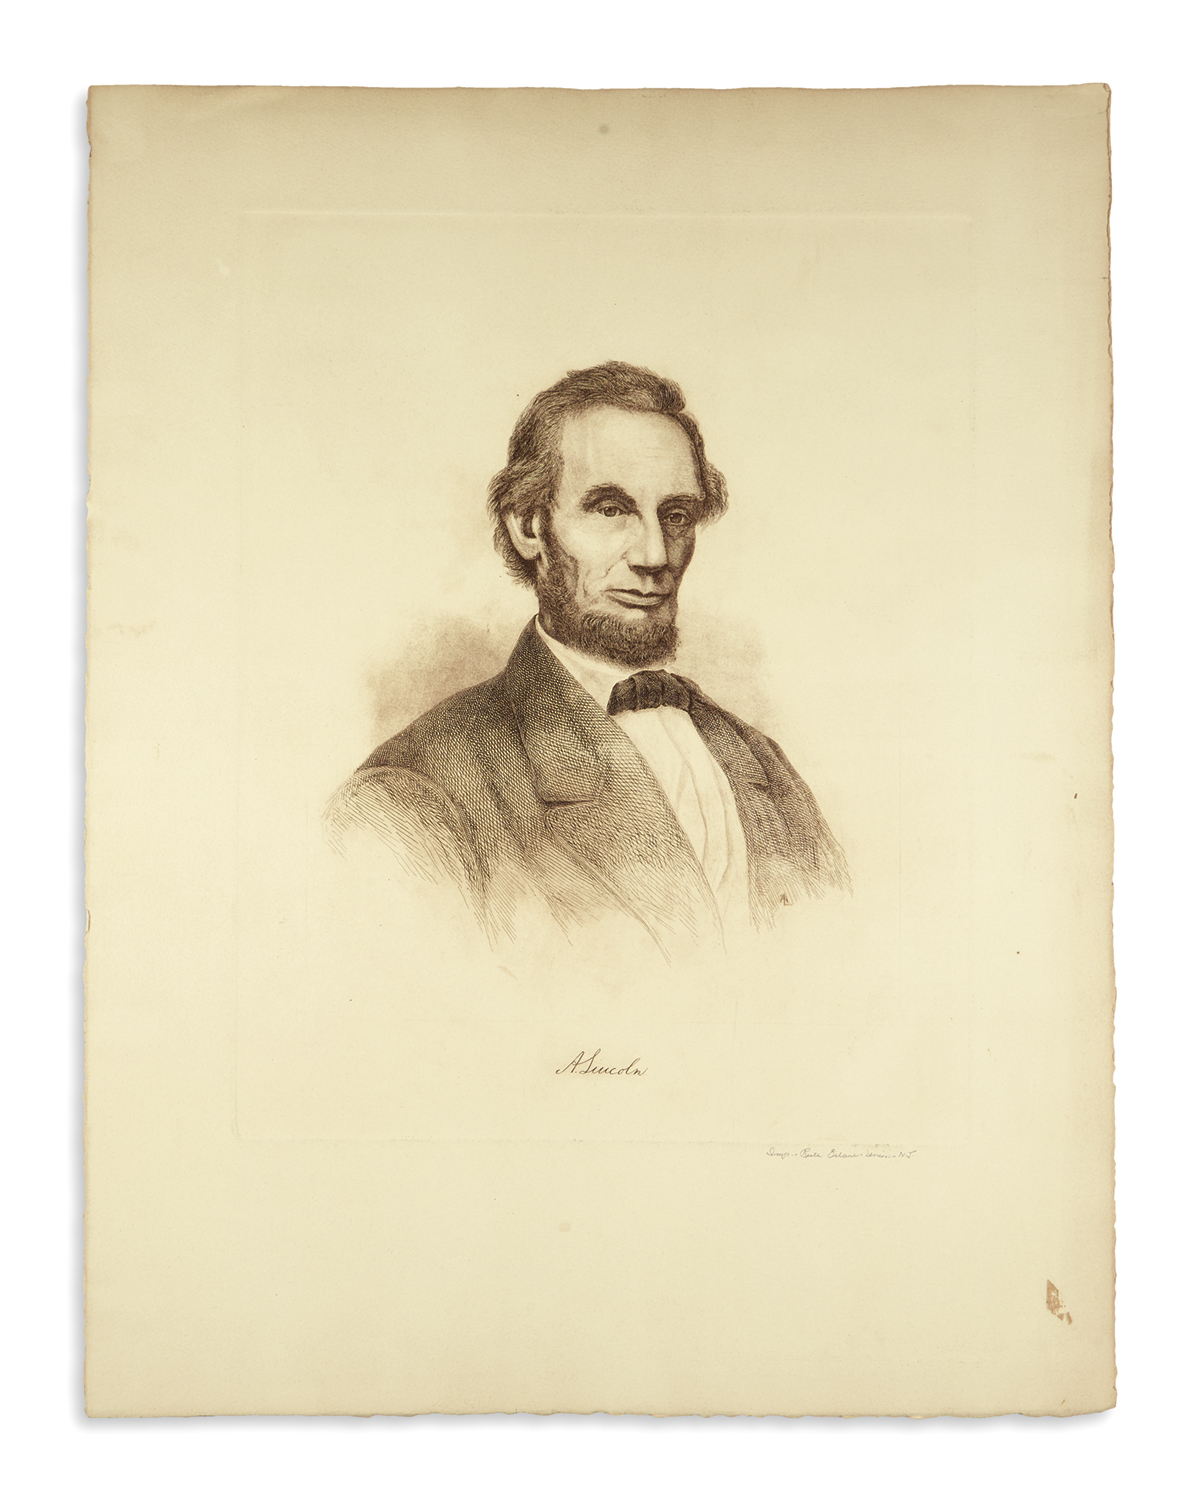 (PRINTS--MEMORIAL)-Group-of-10-prints-of-Lincoln-from-the-la